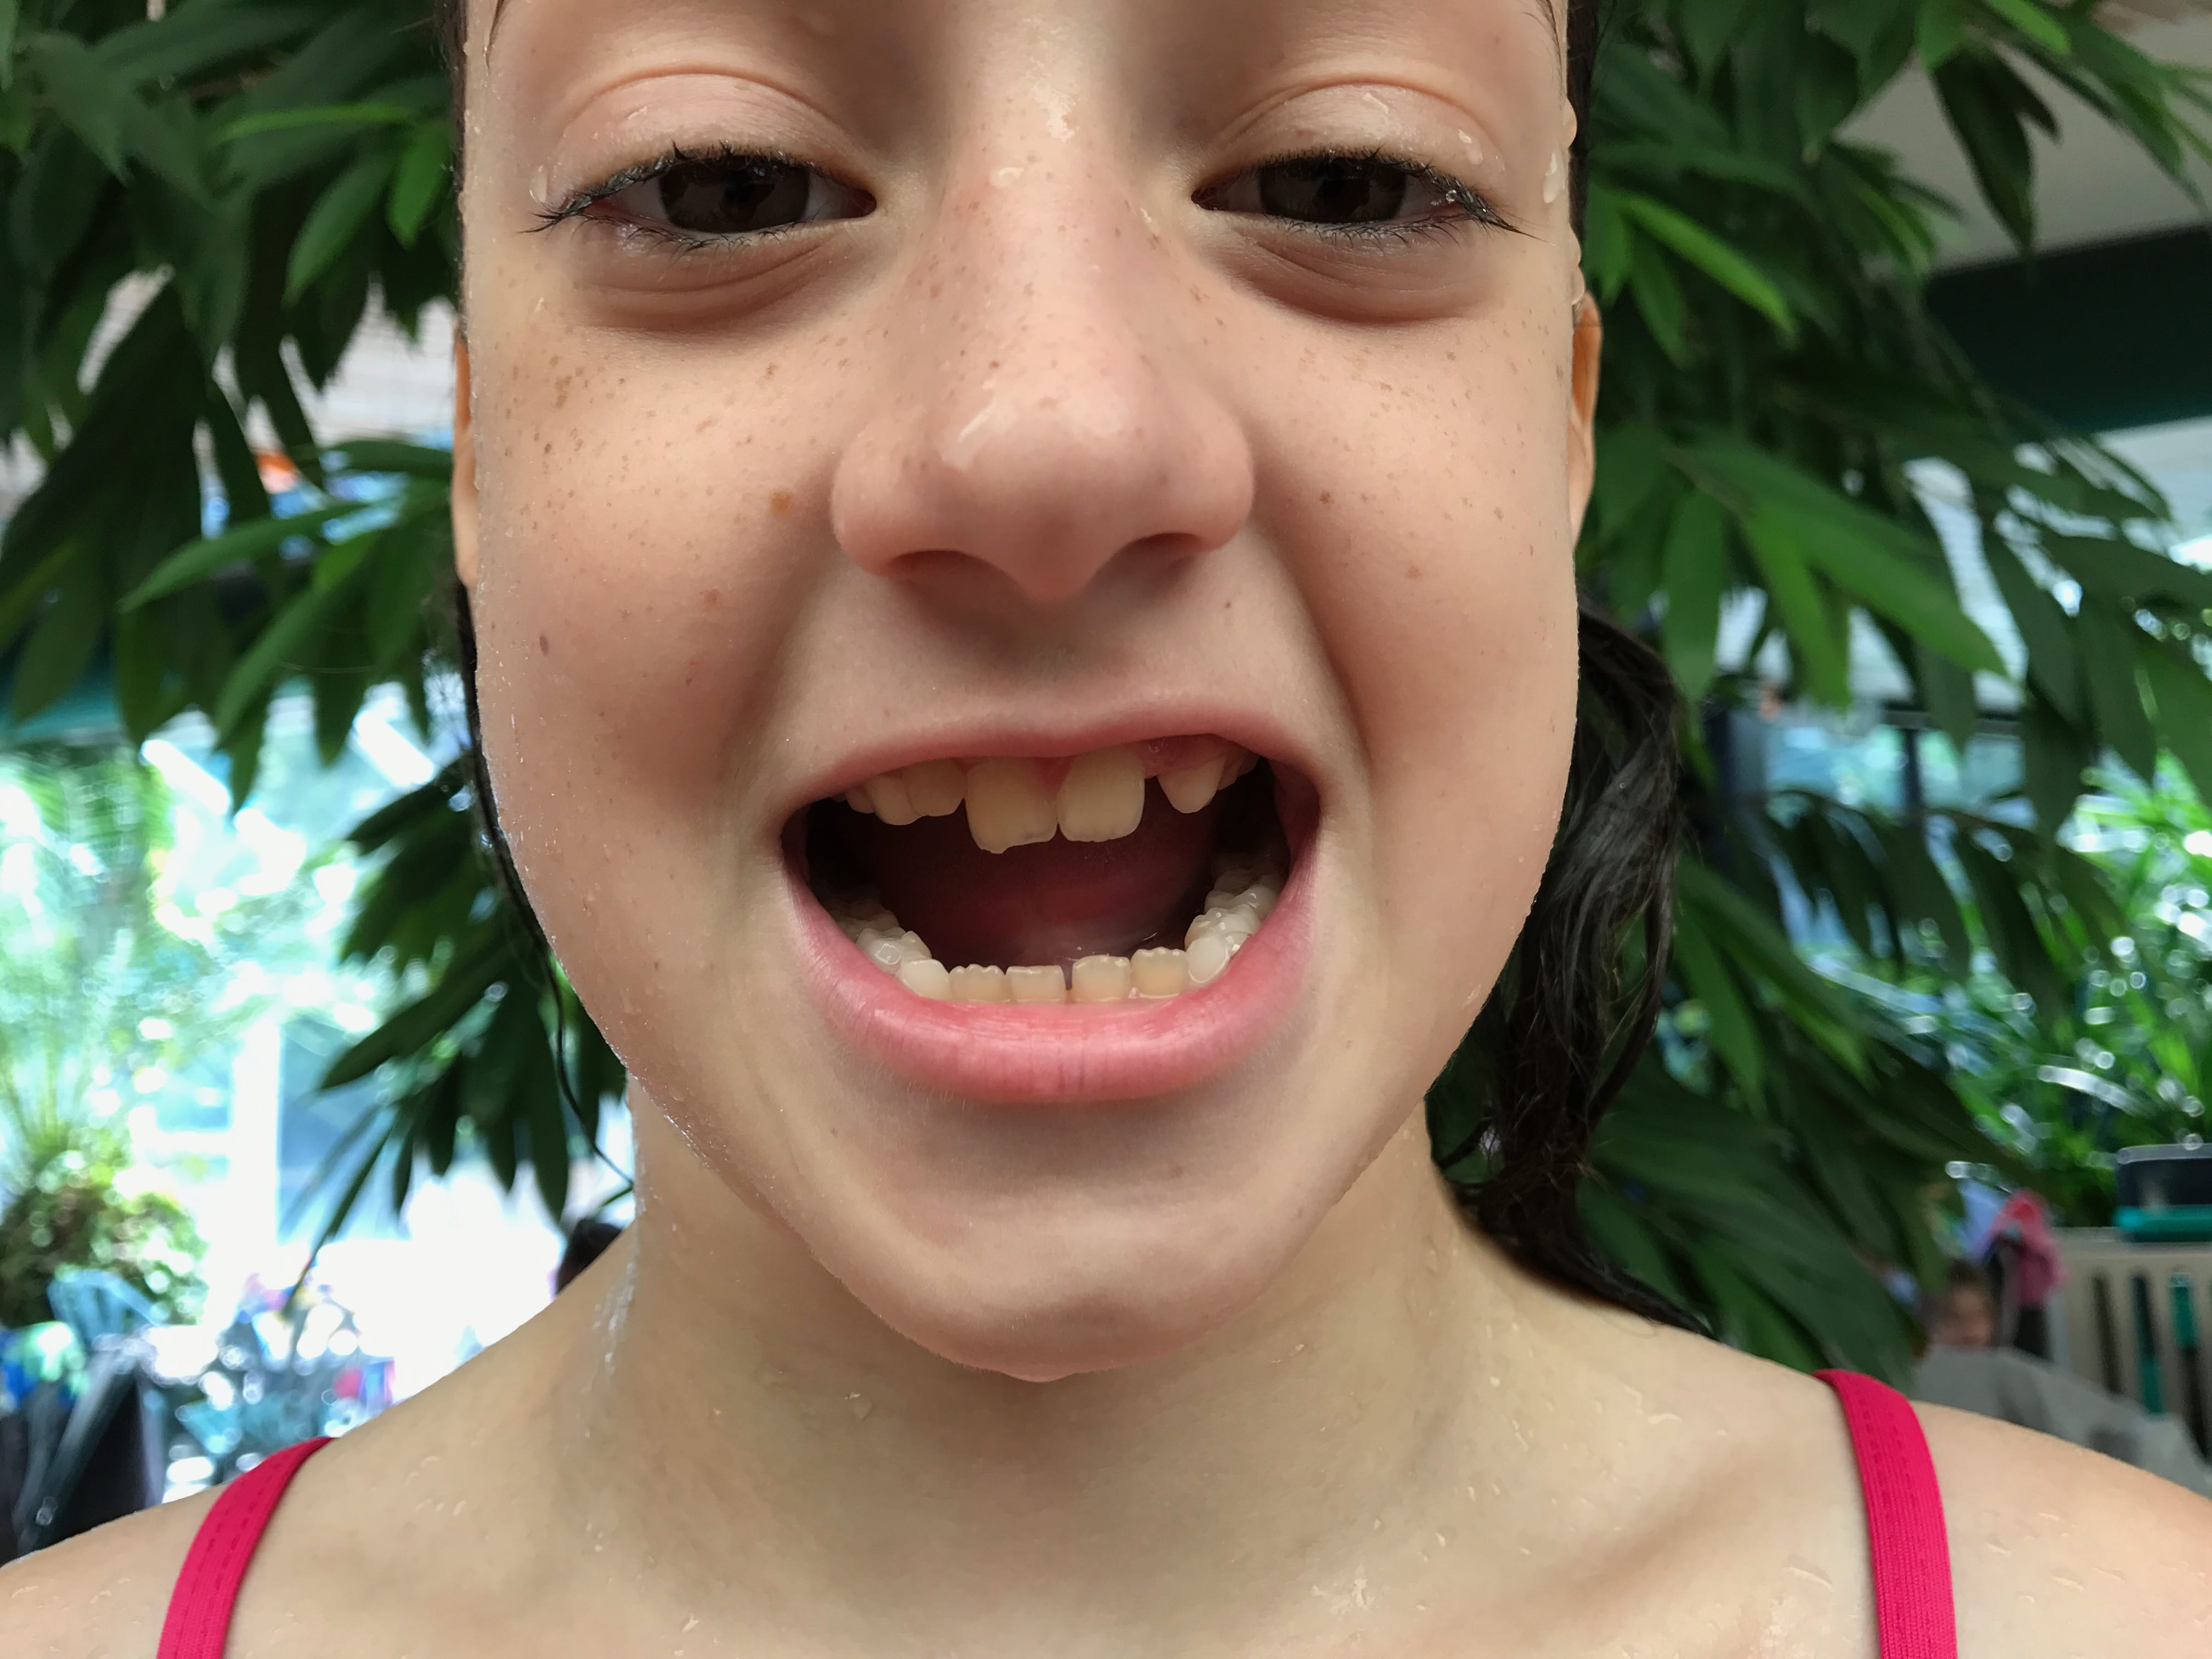 Isabella chipped her tooth